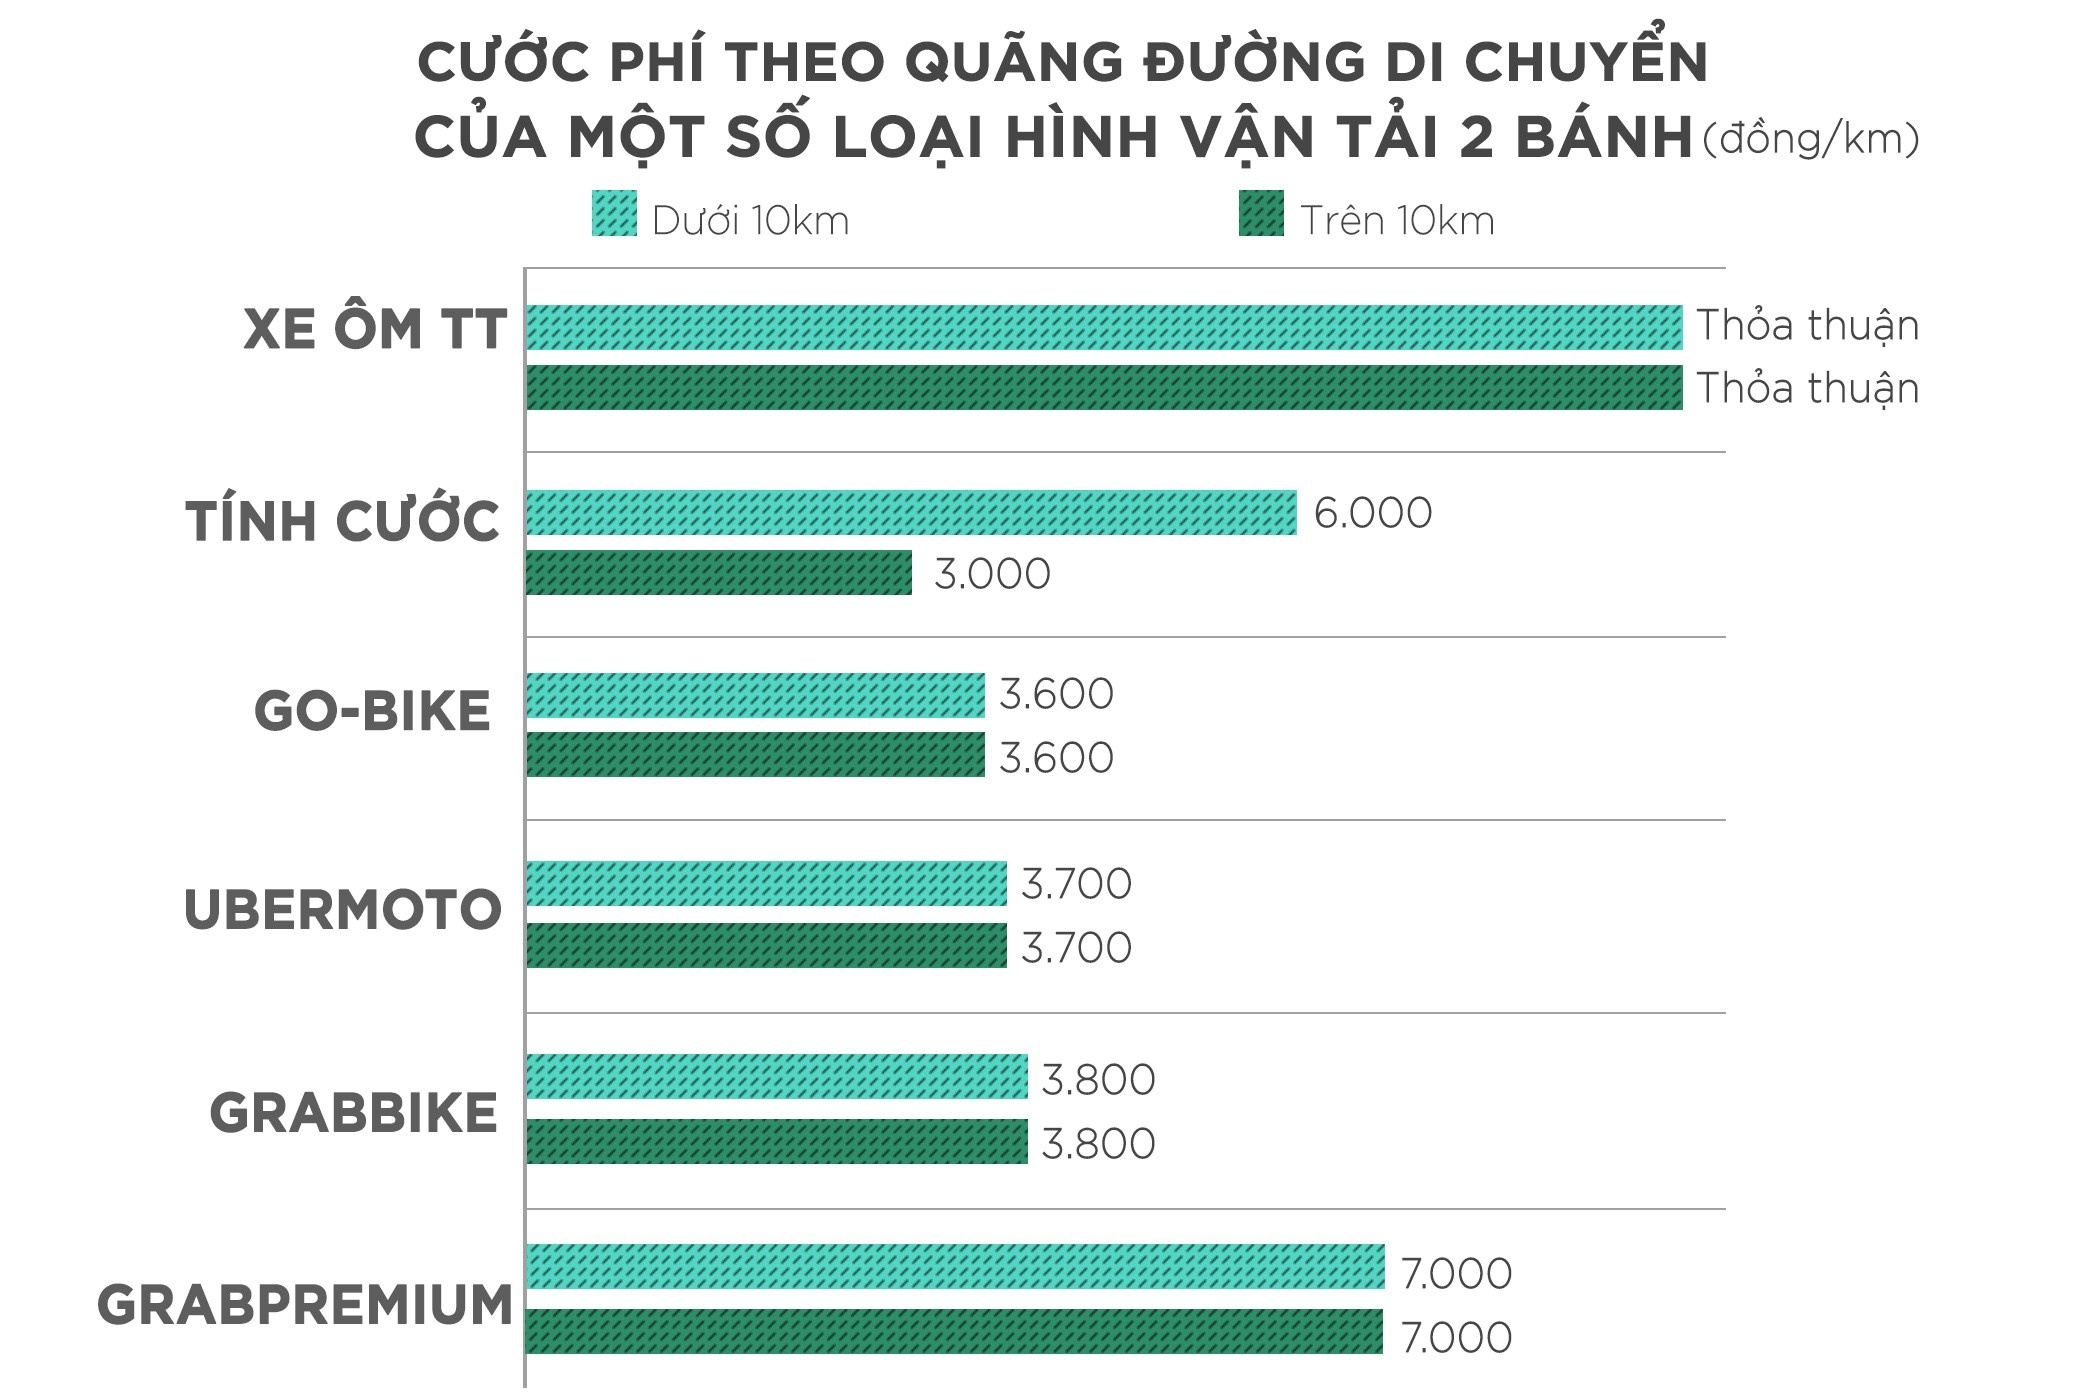 Uber, Grab voi cuoc chien gia cuoc xe om hinh anh 6